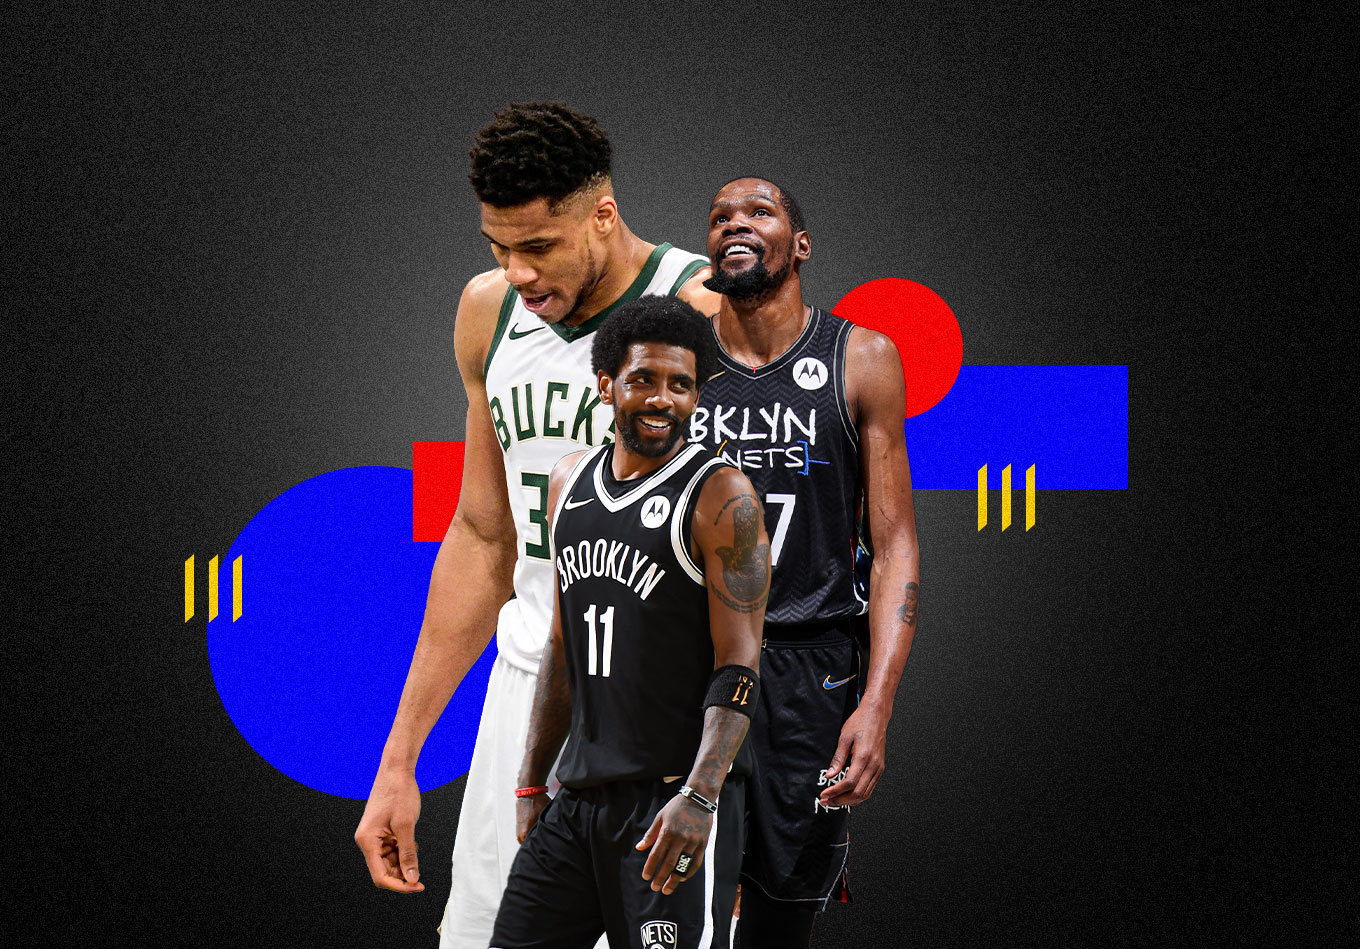 Deer in Headlights: How Loaded Brooklyn Is Helping Giannis, Milwaukee Fall Into Old Habits